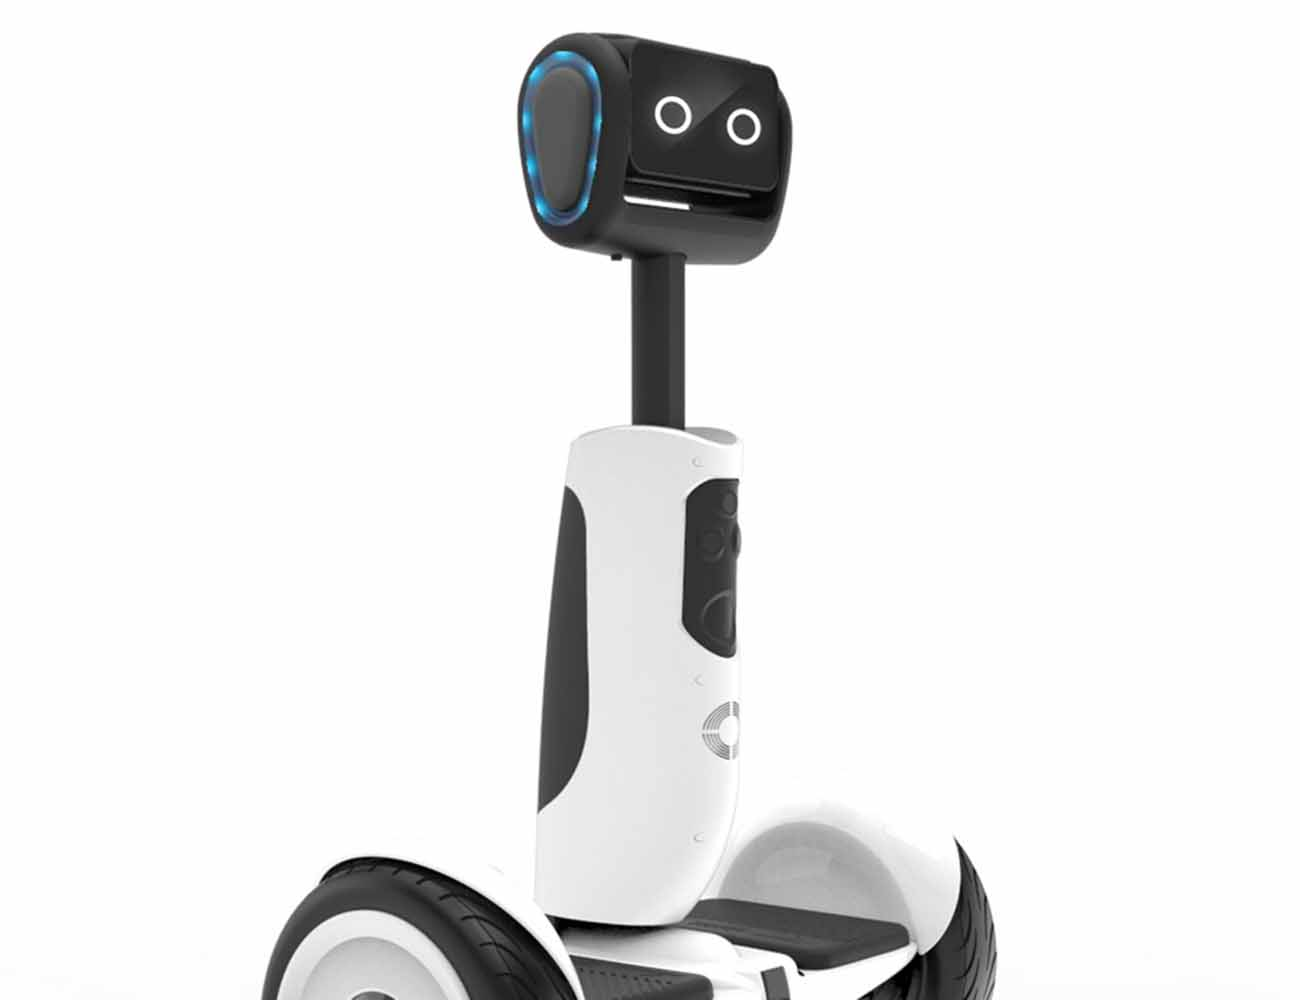 The New Segway Robot by Ninebot - Personal Mobility Gone